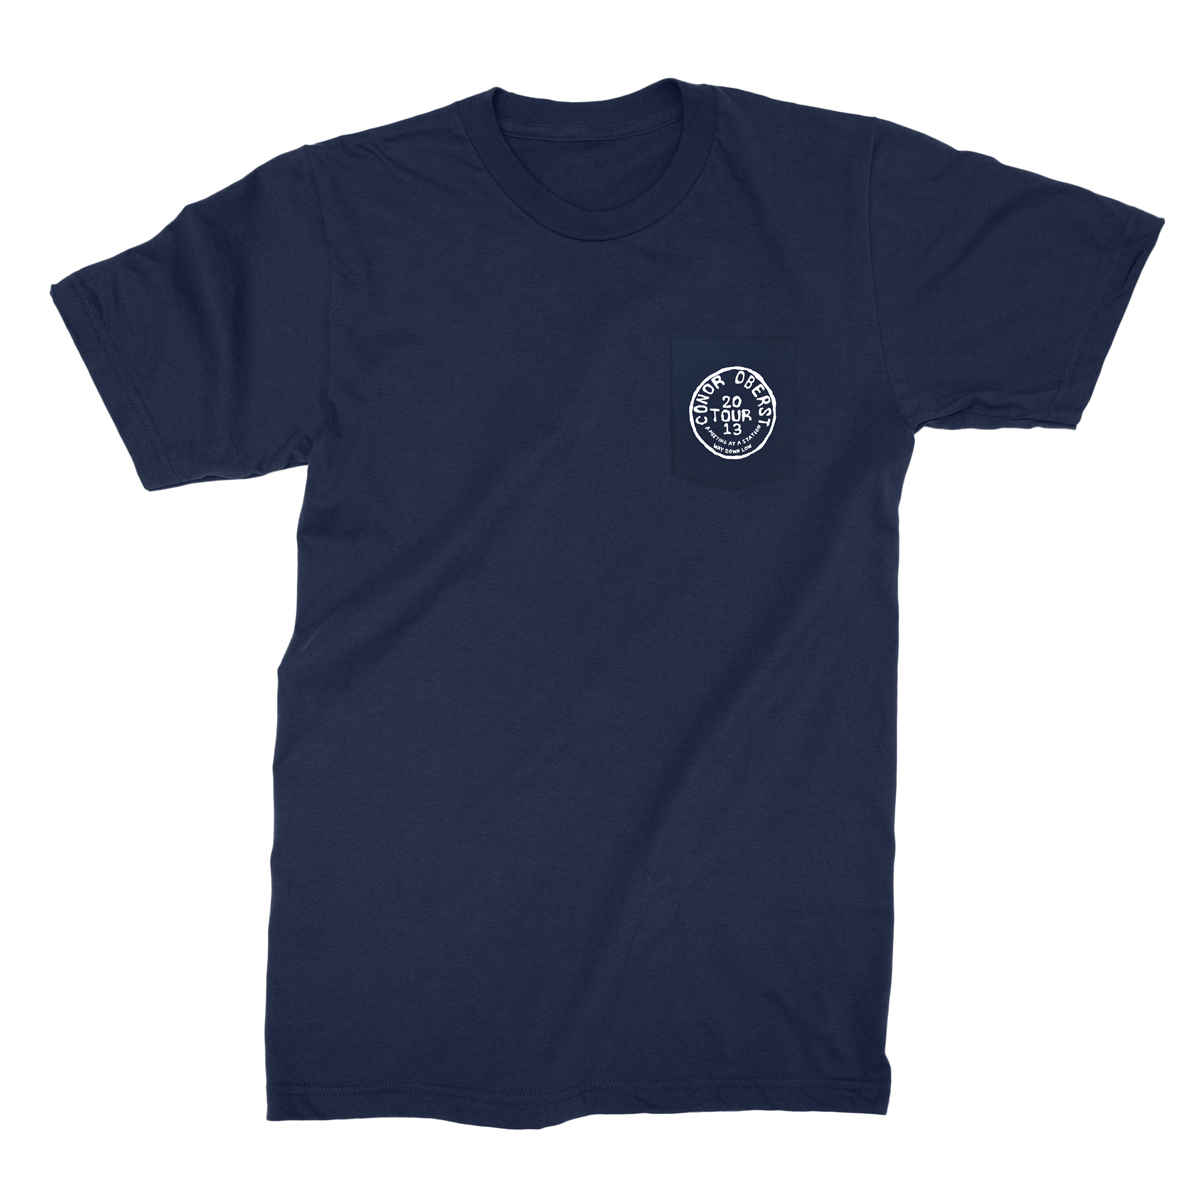 2013 European Tour Stamp Pocket Tee - Conor Oberst